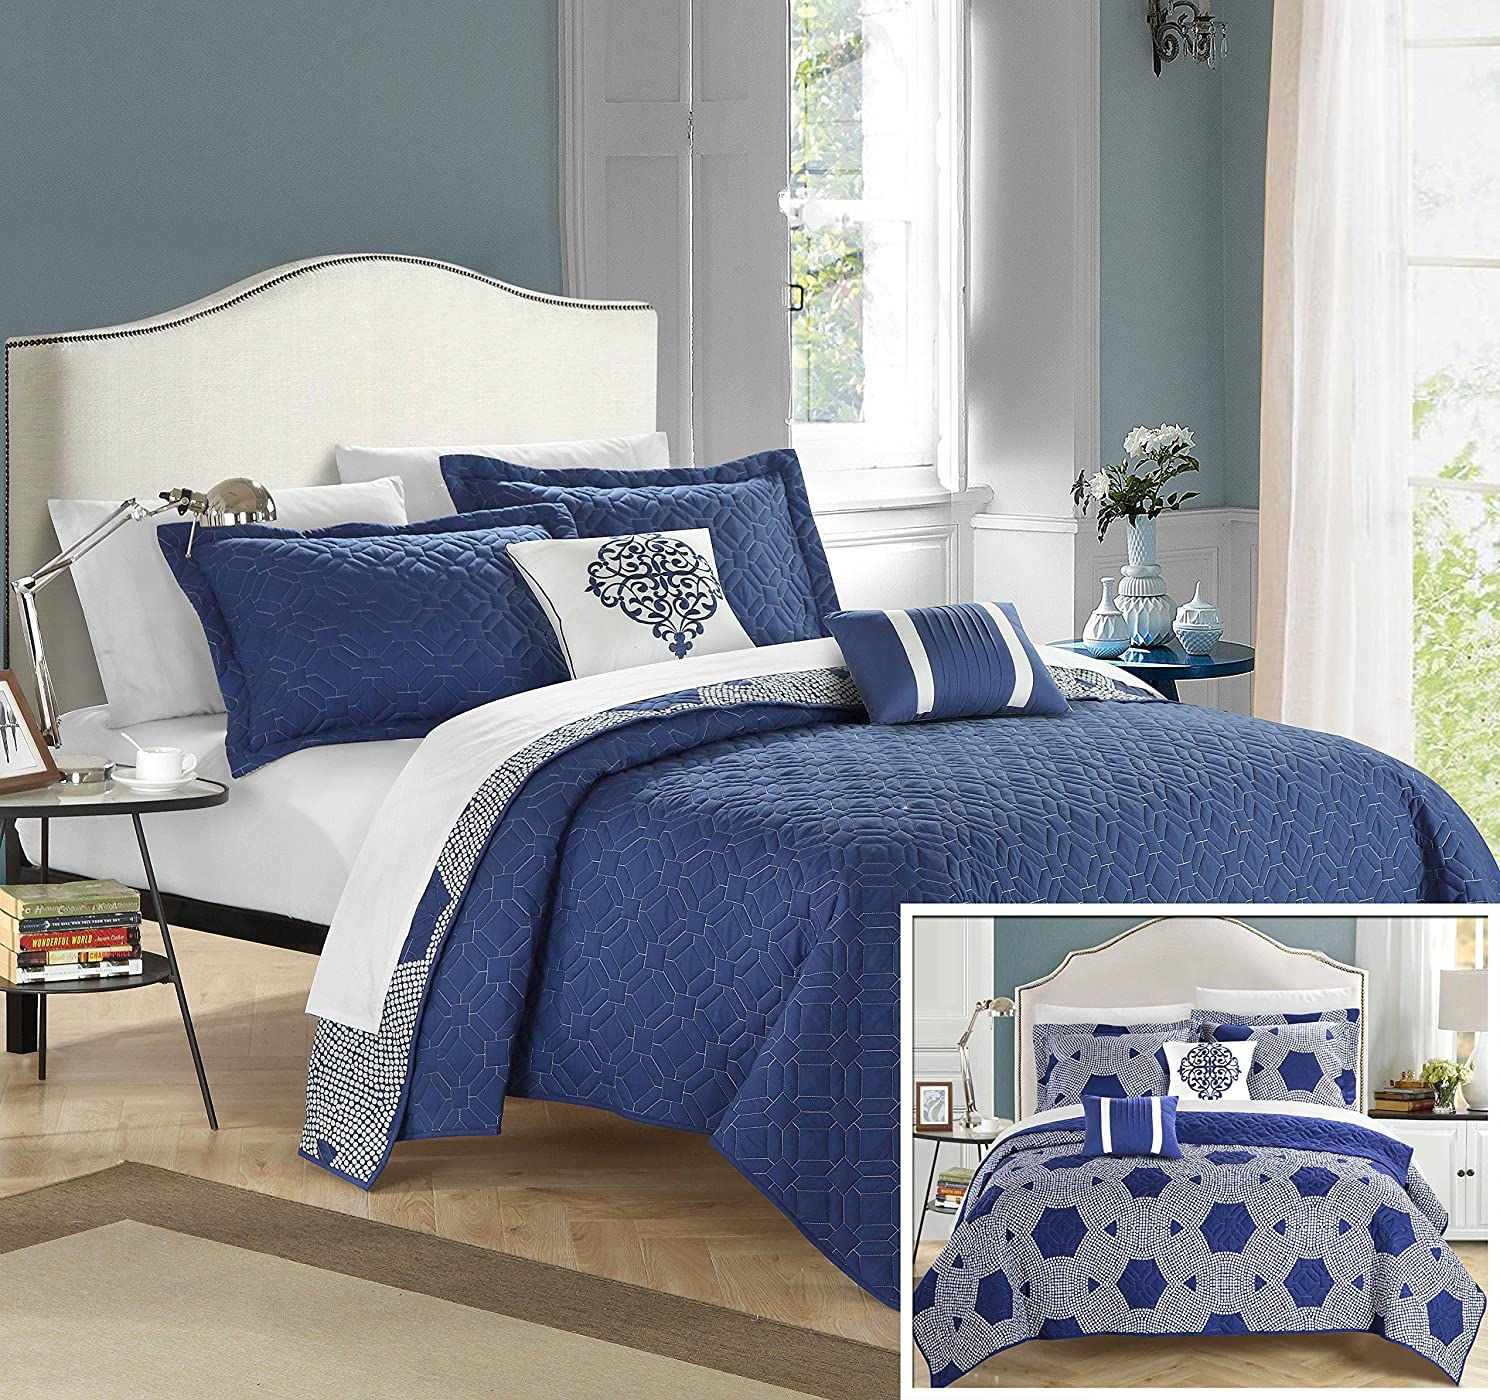 Chic Home 5 Piece Zoe Hexagon Queen Quilt Set